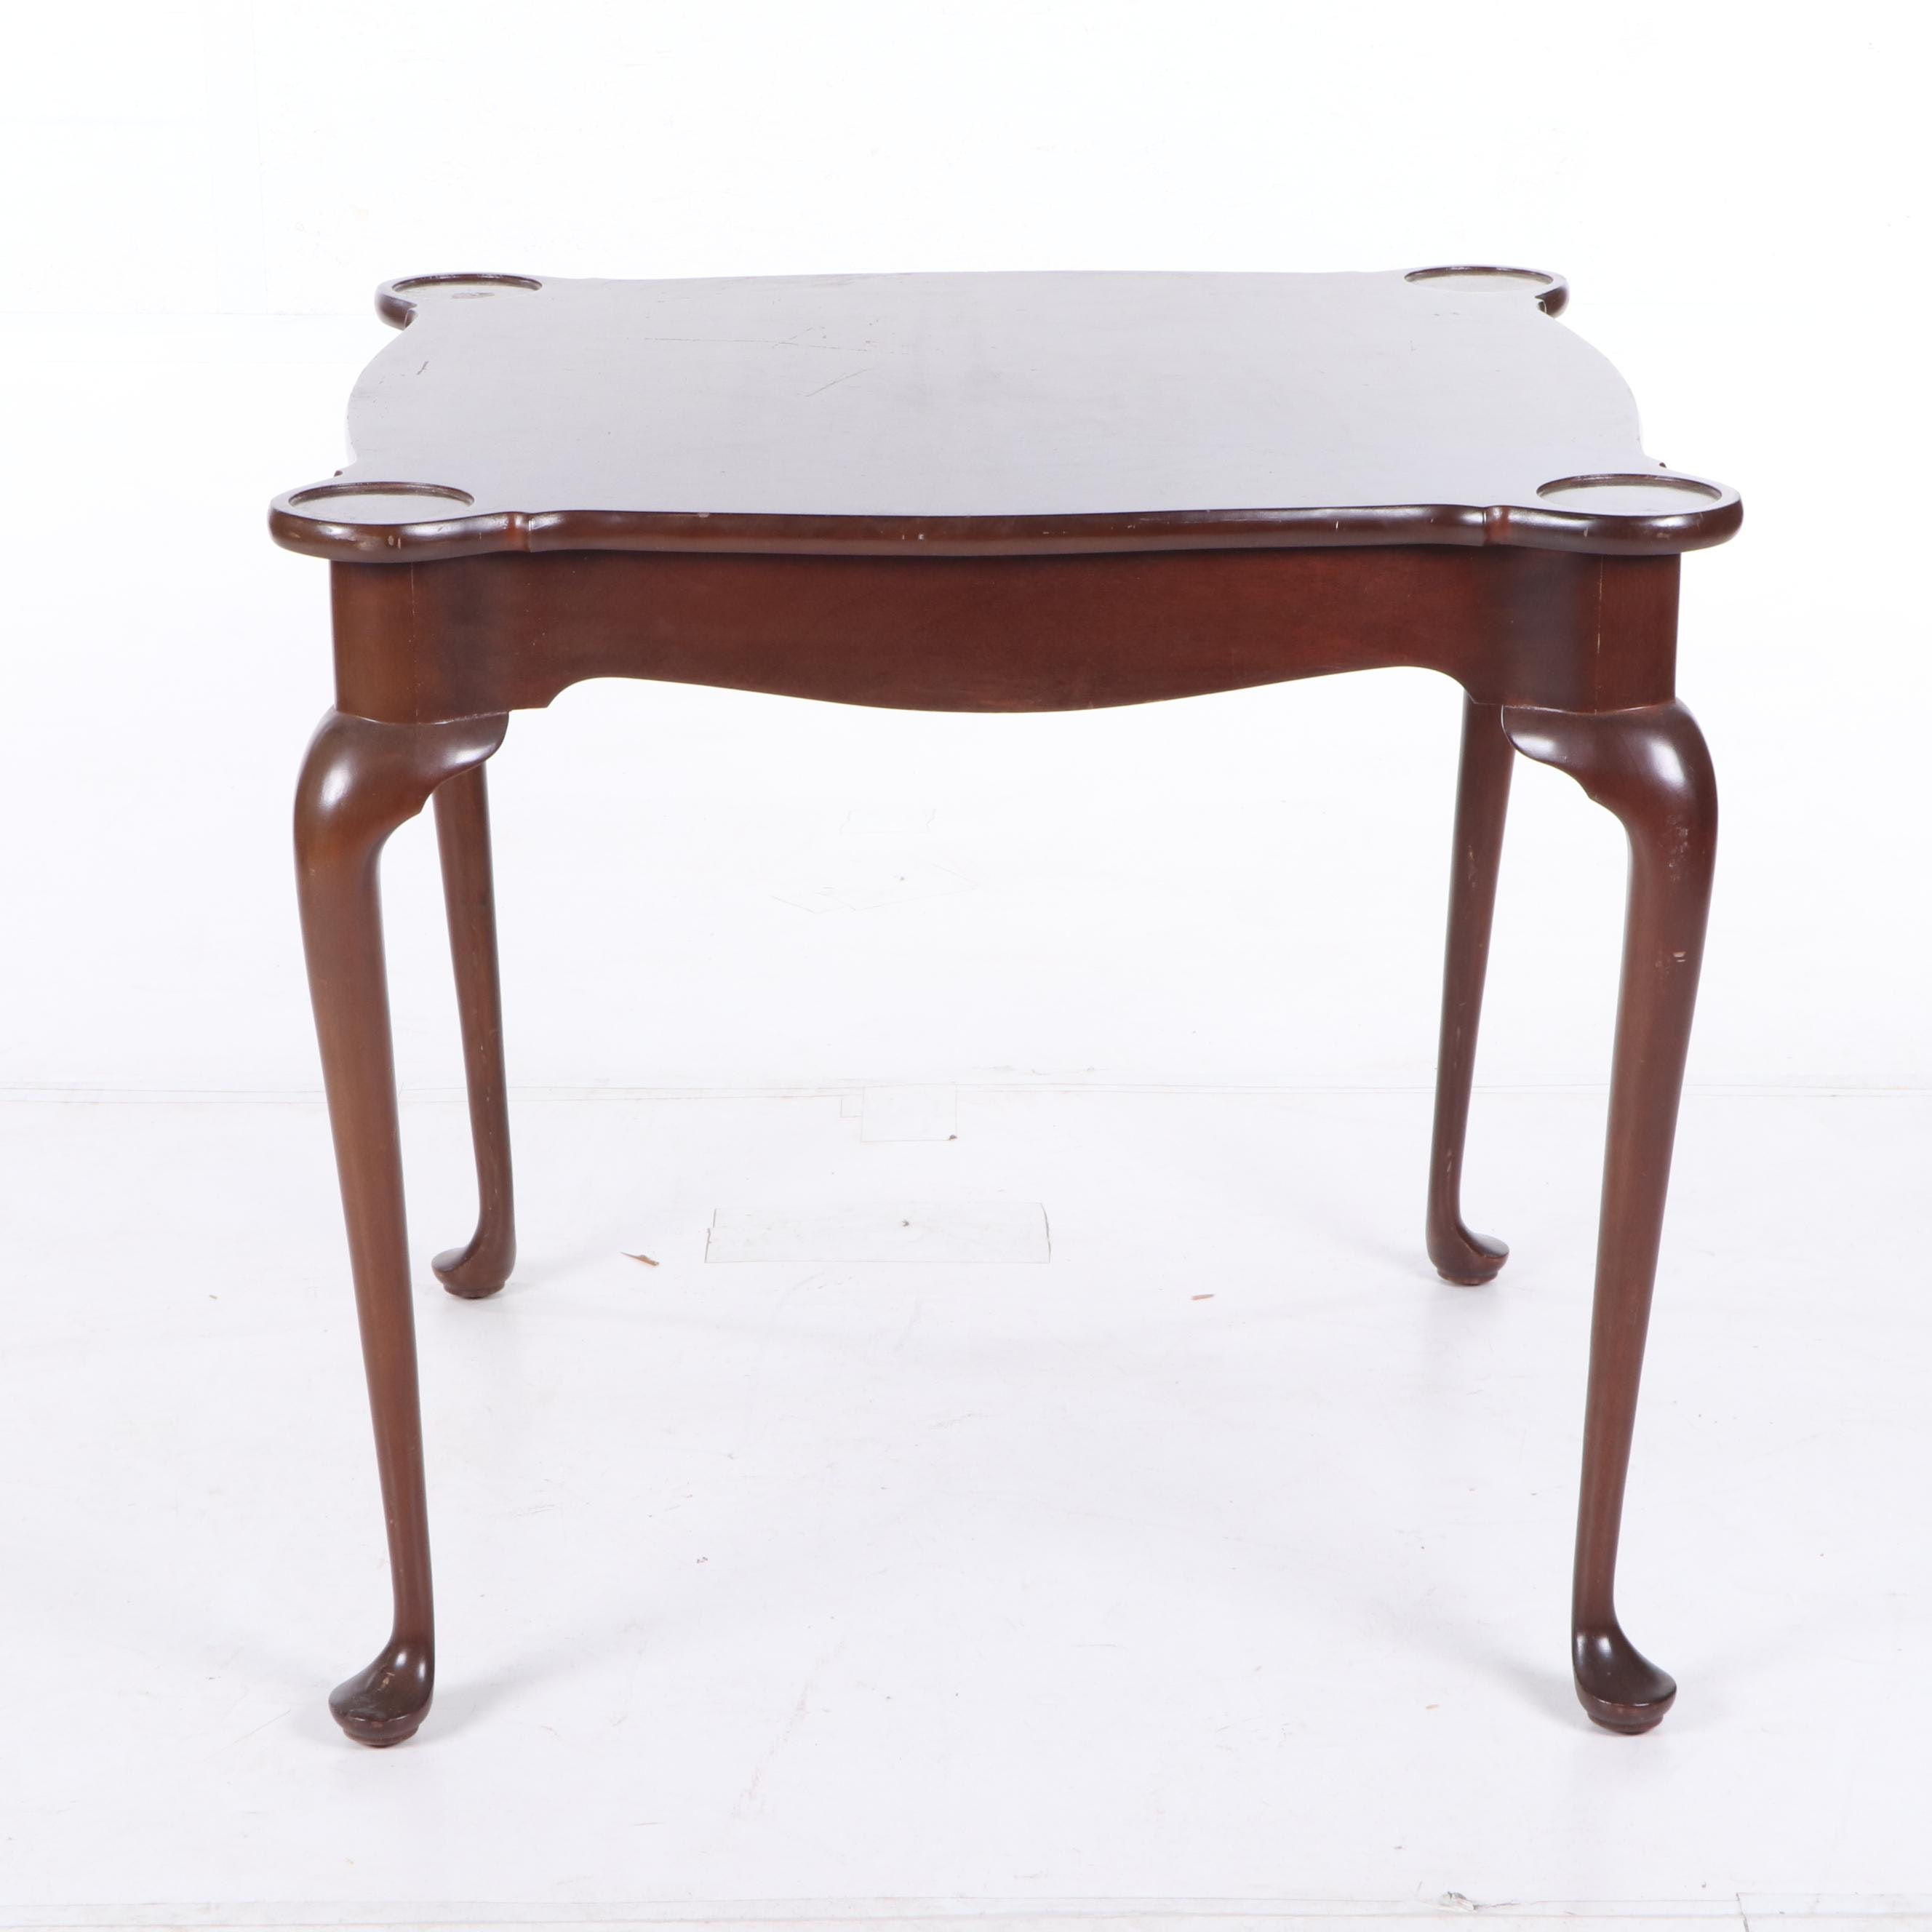 Queen Anne Style Mahogany Games Table, 20th Century